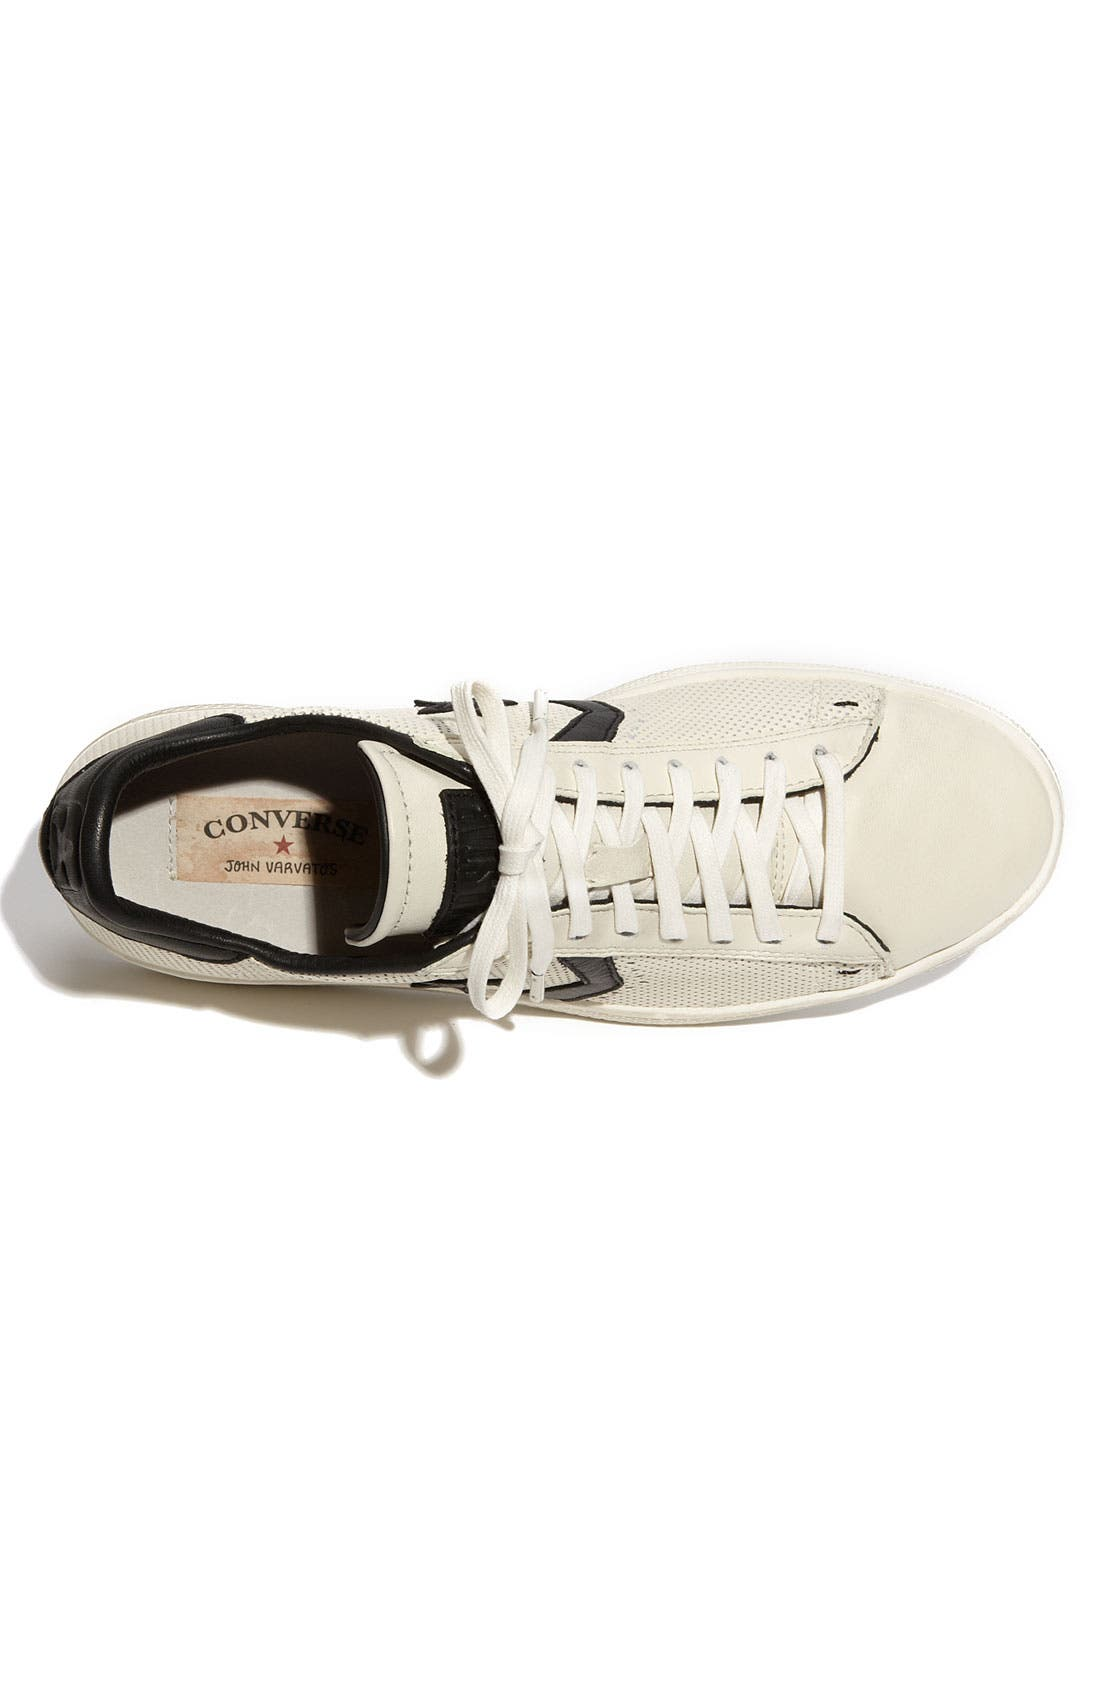 Alternate Image 2  - Converse by John Varvatos 'Star Player' Leather Sneaker